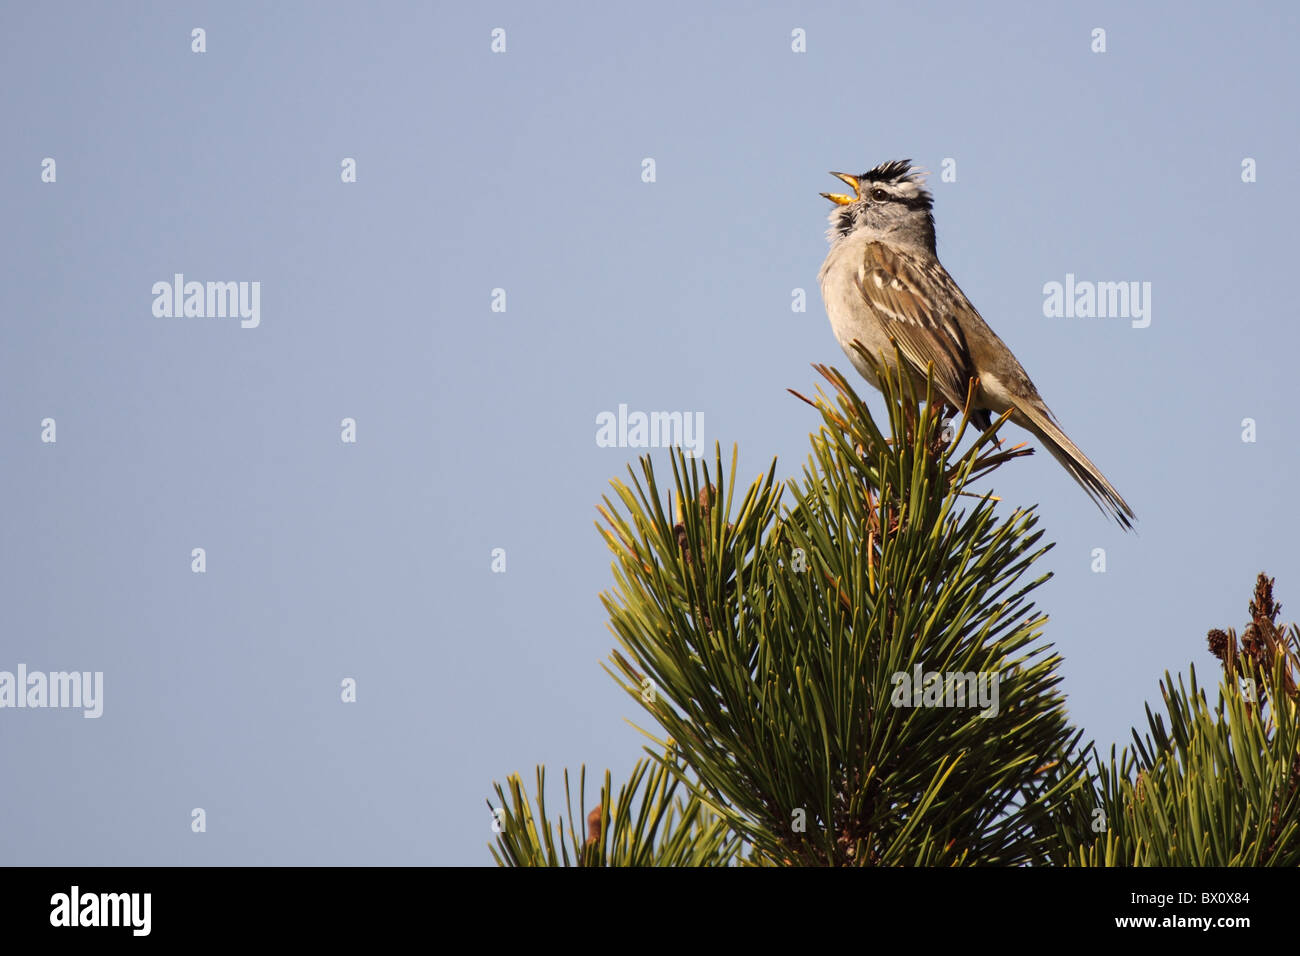 White-crowned Sparrow singing loudly. - Stock Image